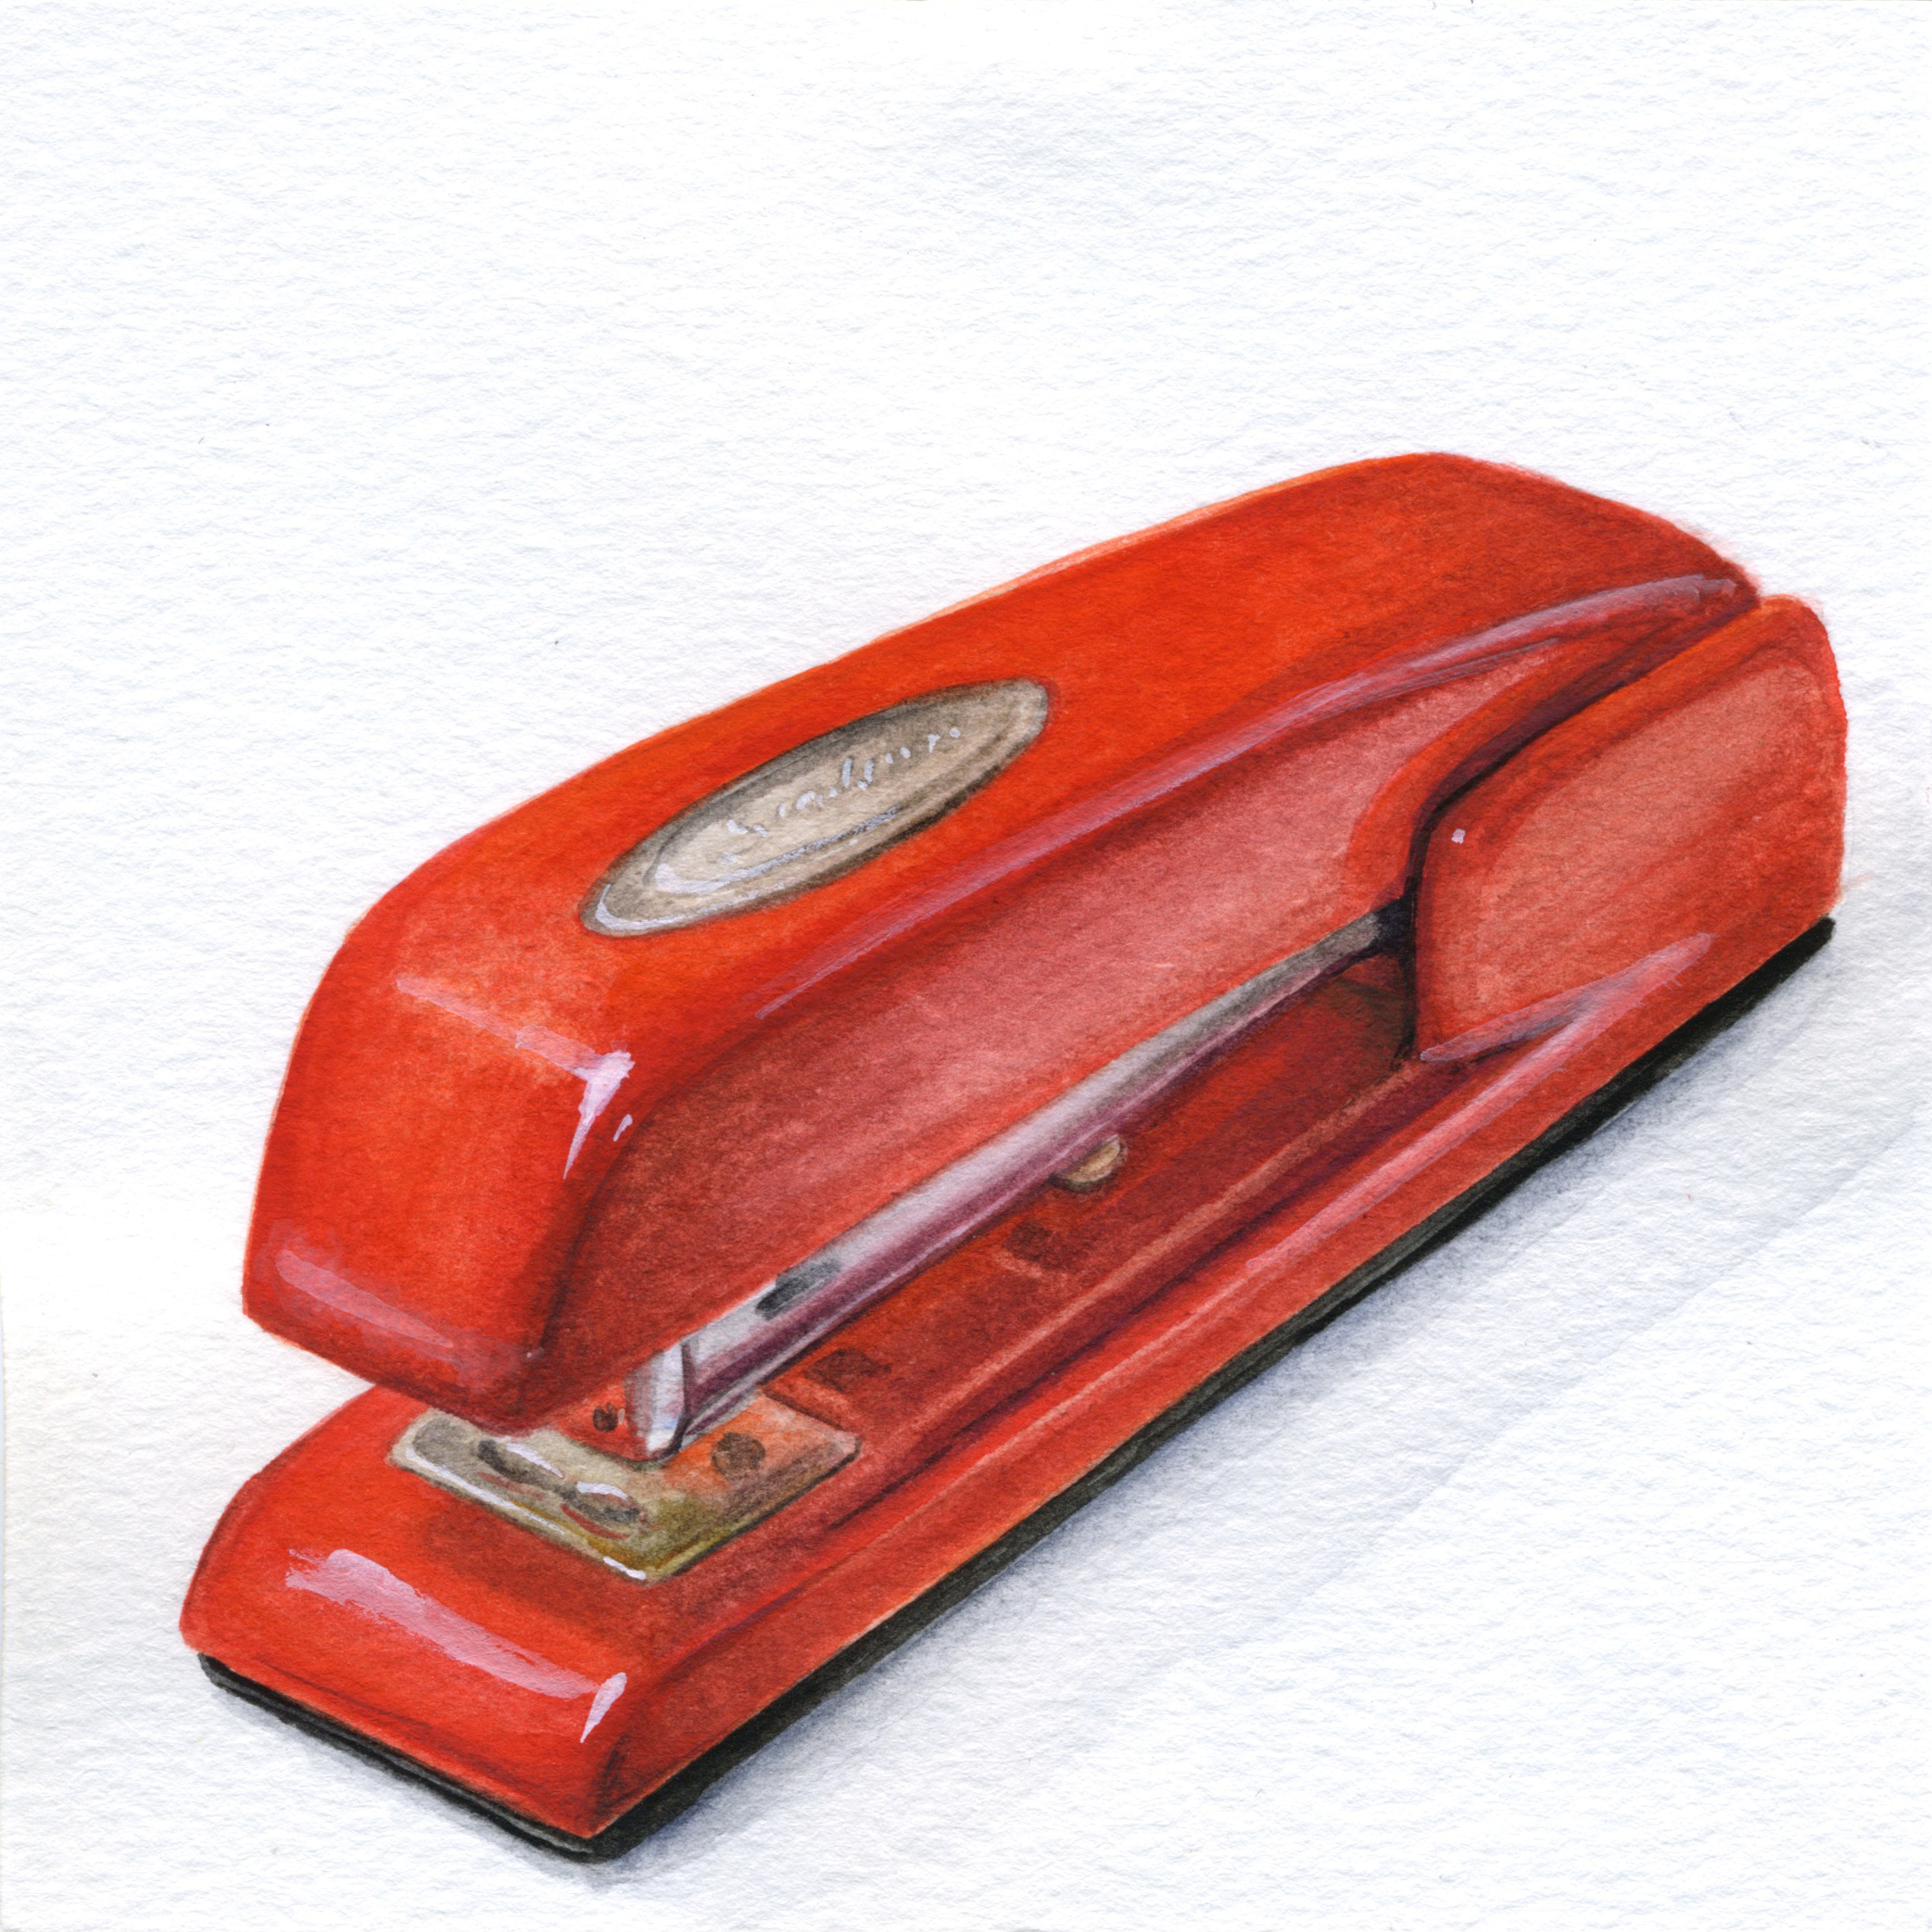 Little Paintings of my Favorite Things #4 - The Red Stapler